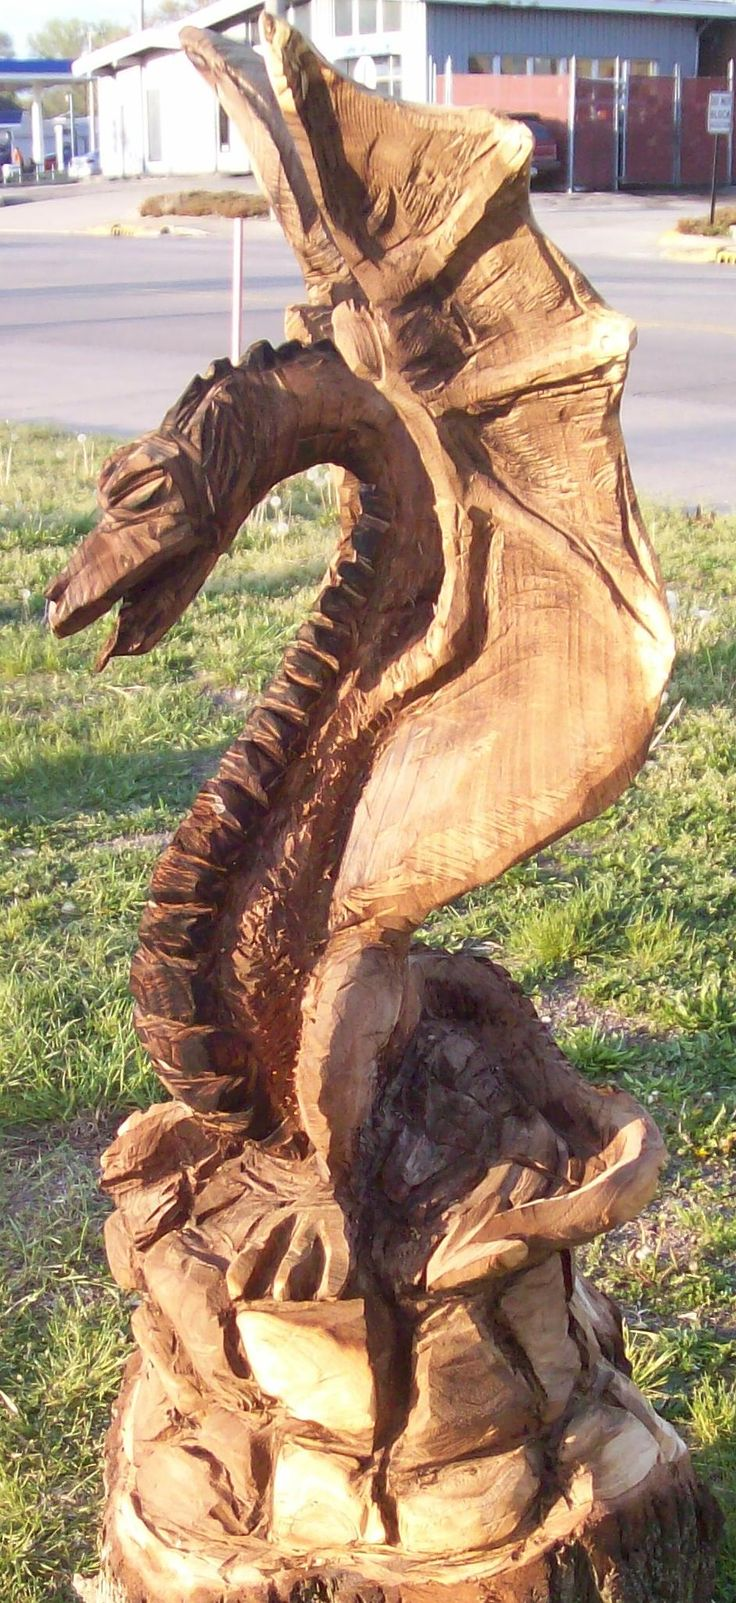 Best images about chain saw wood carving on pinterest